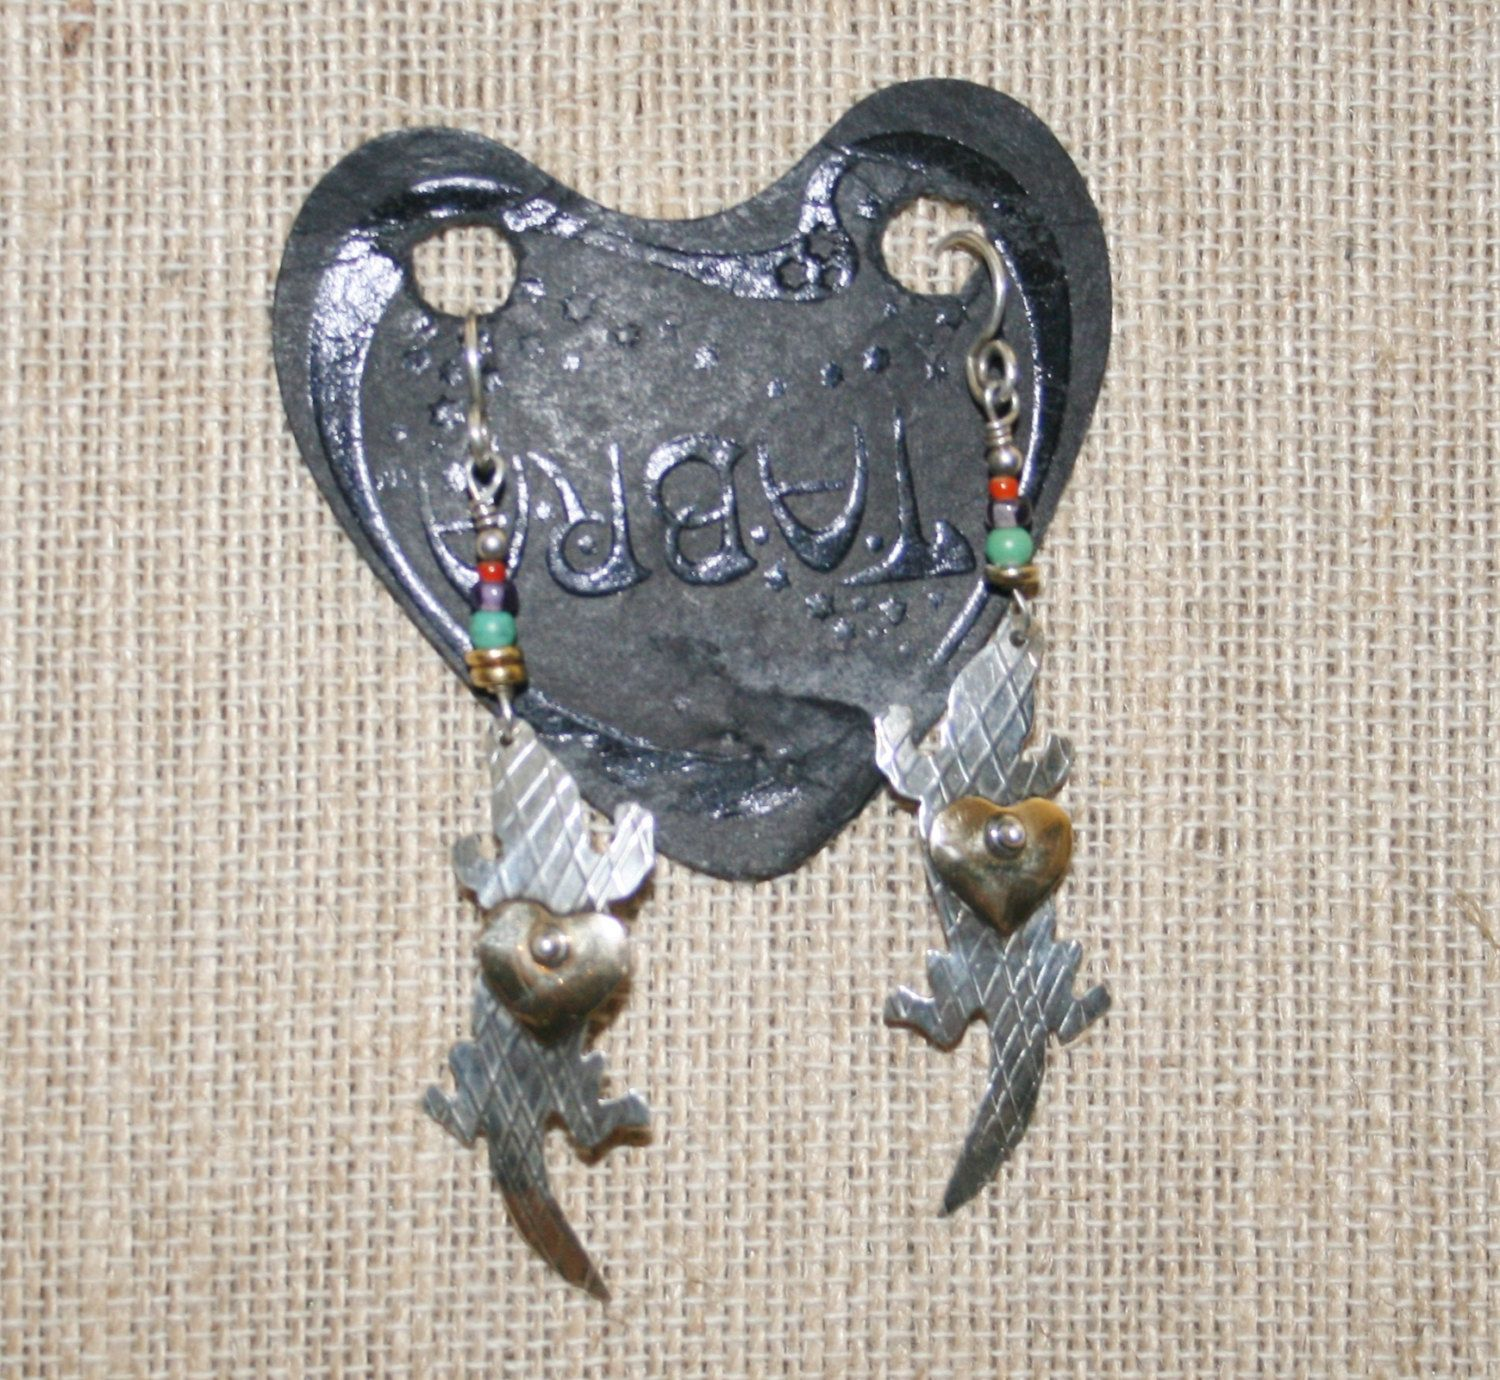 Tabra Lizard Heart Beads Earrings  plus Free USA Shipping! by Route66Diner on Etsy